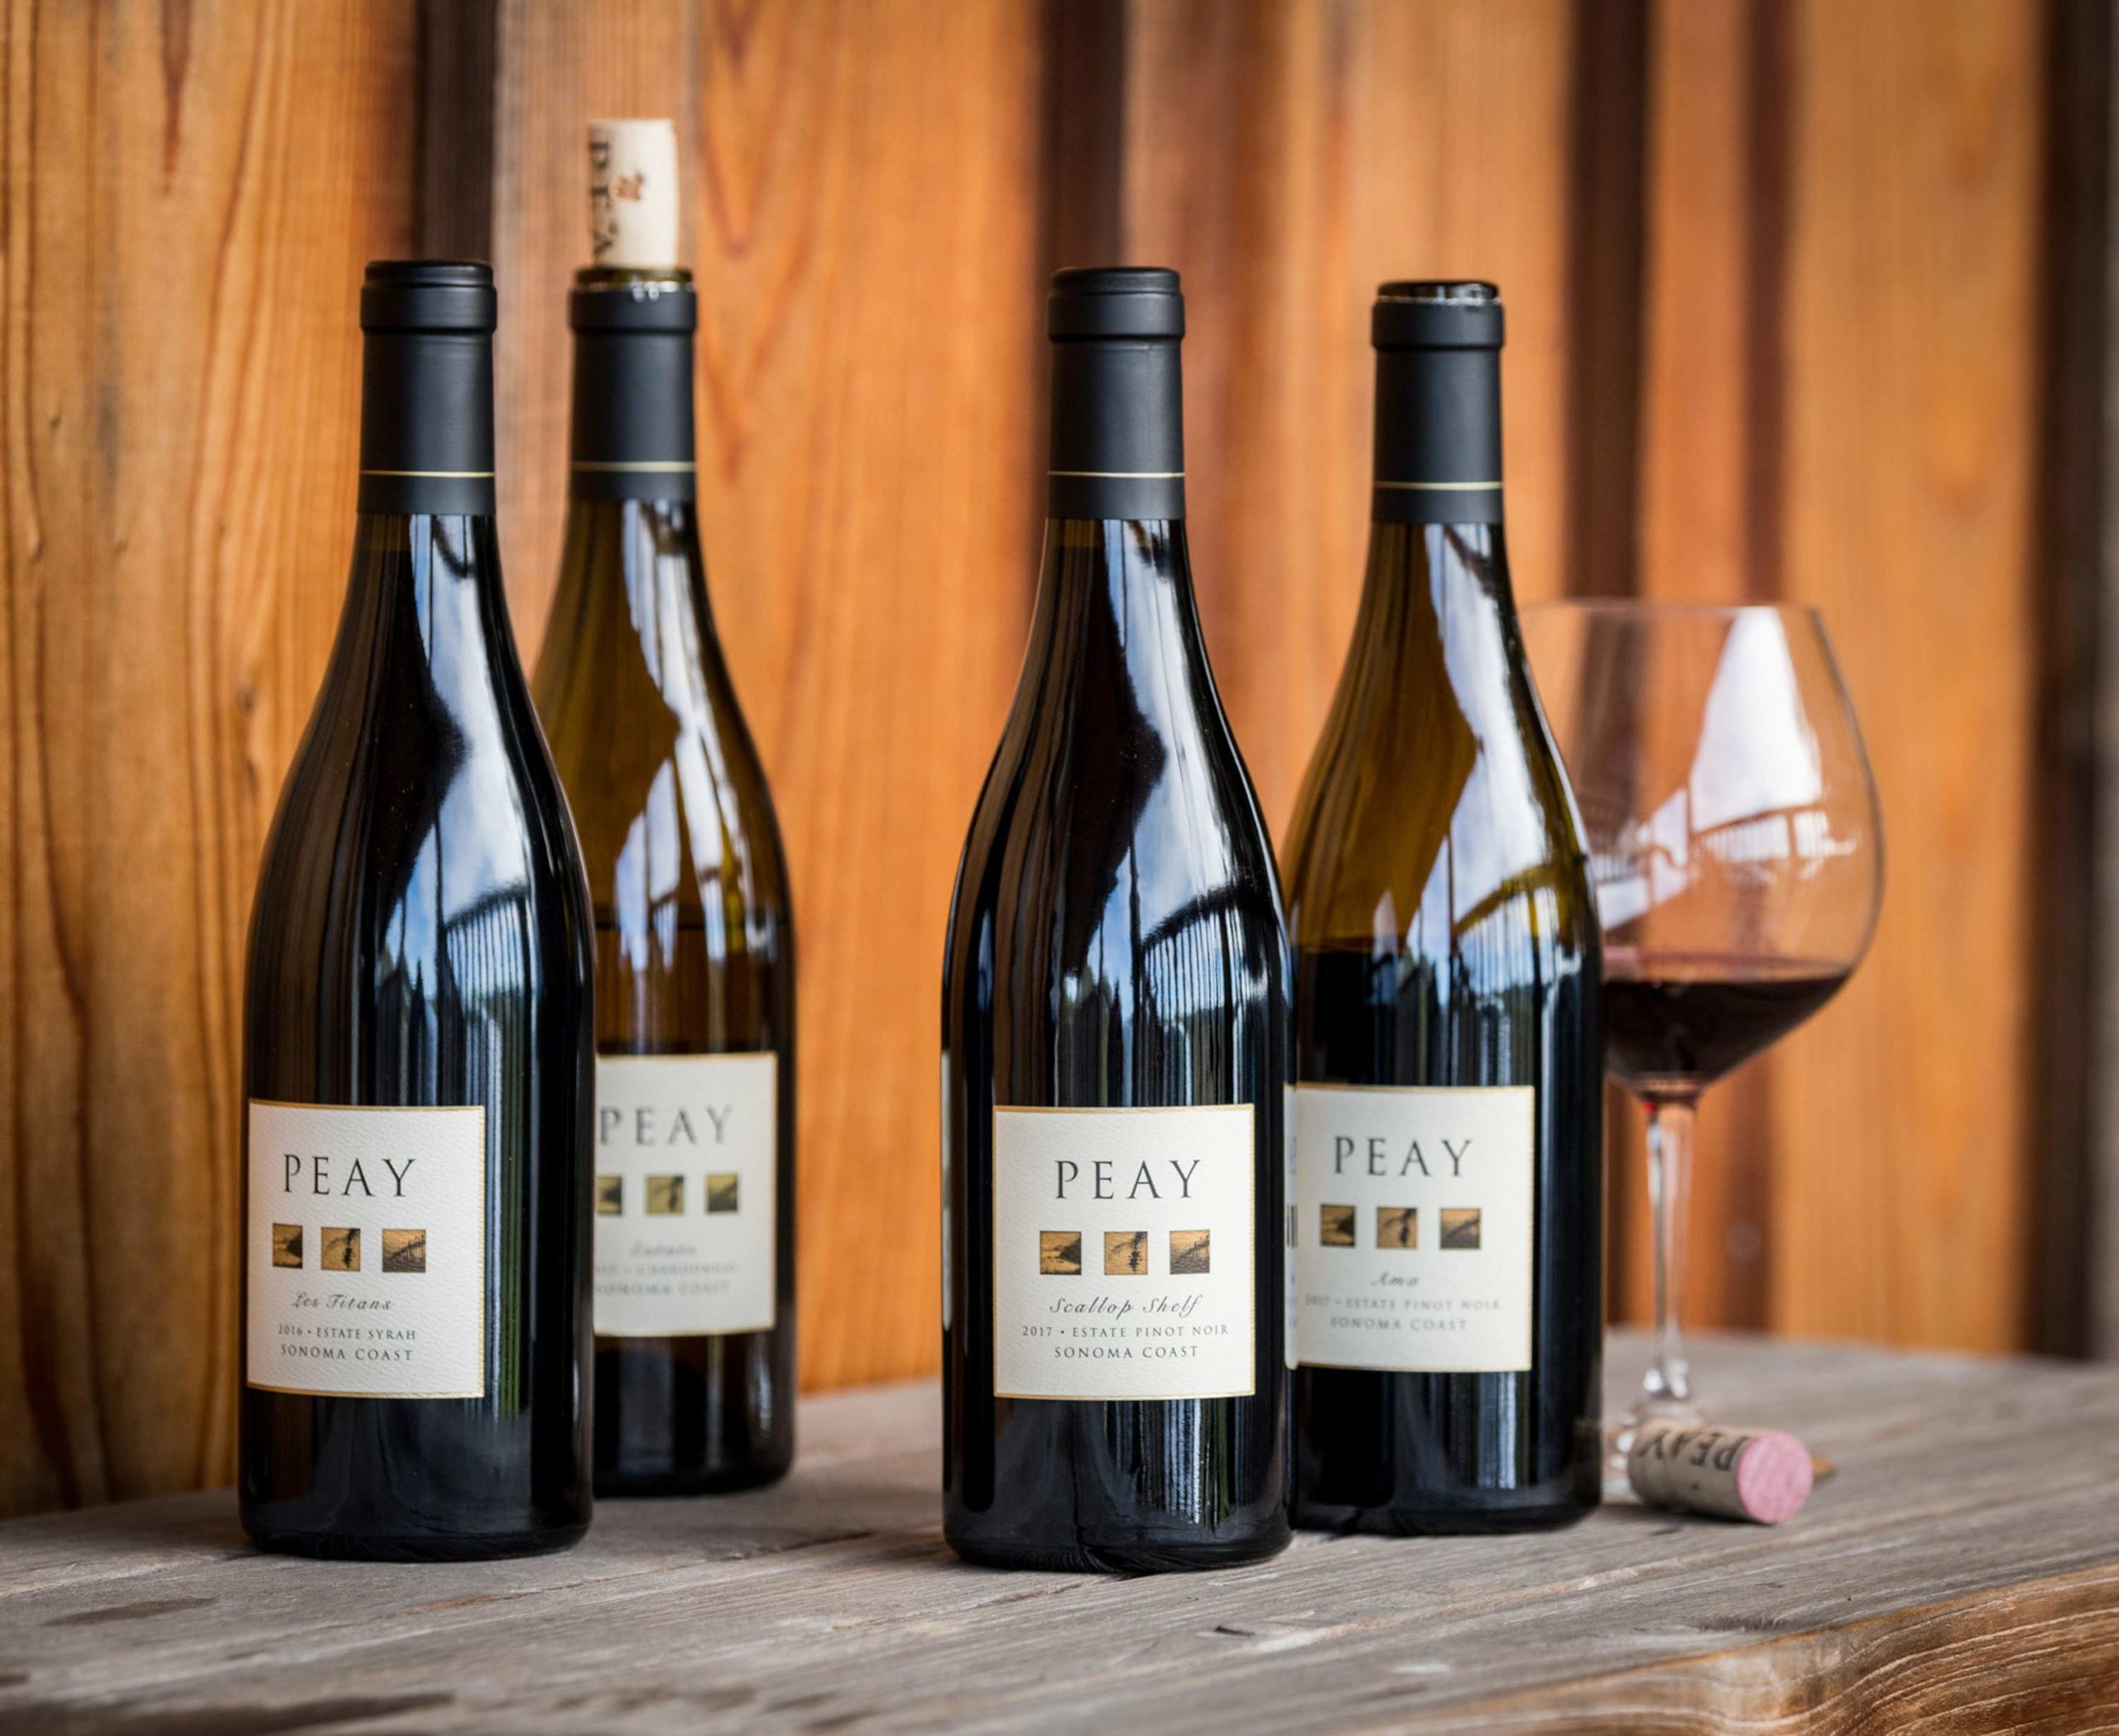 Featured image for Article: 2010 Peay Vineyards Ama Estate Pinot noir, Sonoma Coast